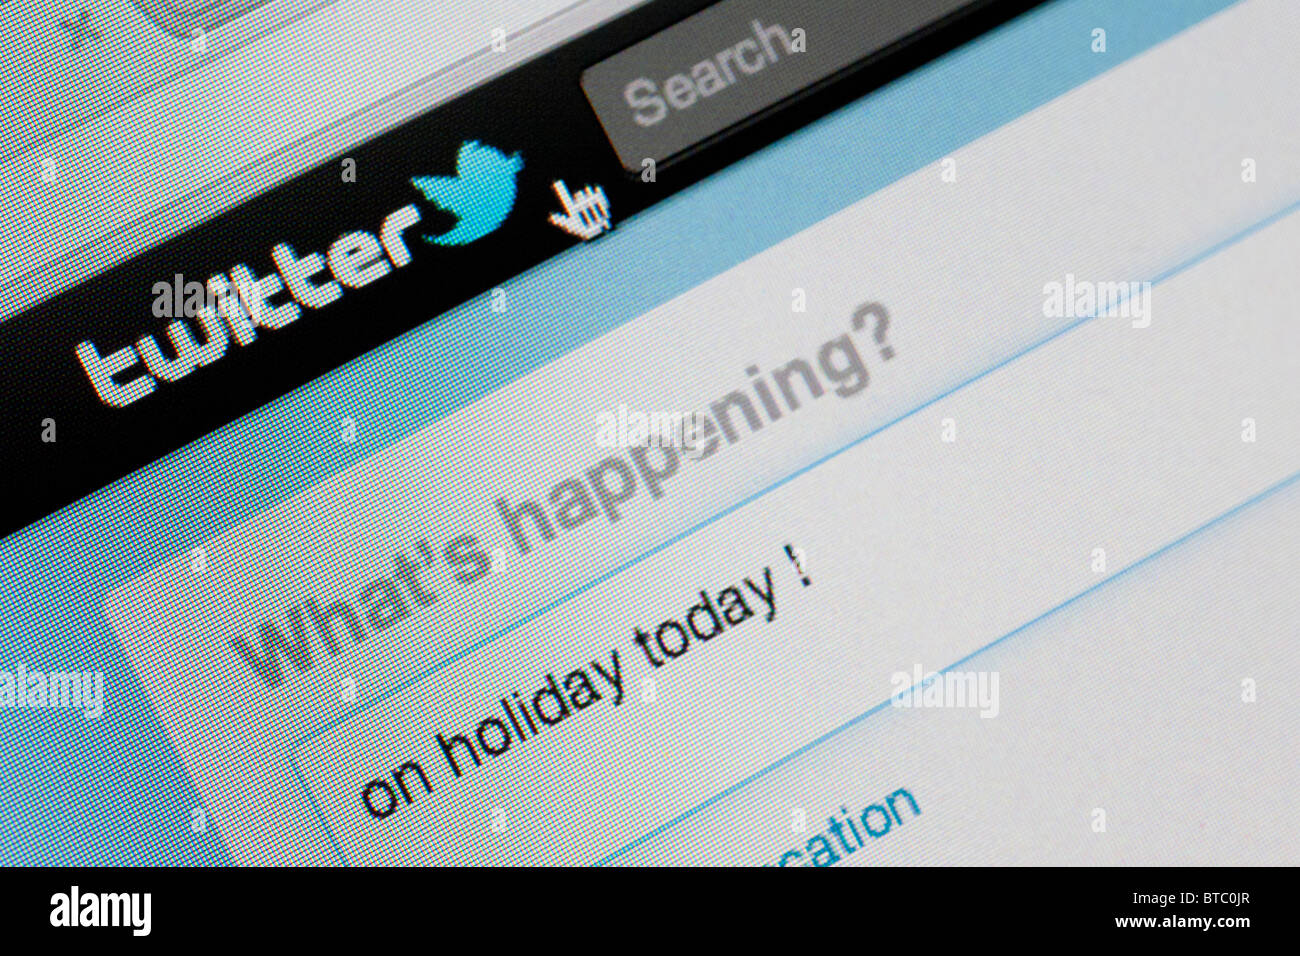 Detail of screenshot from website of Twitter instant messaging website - Stock Image